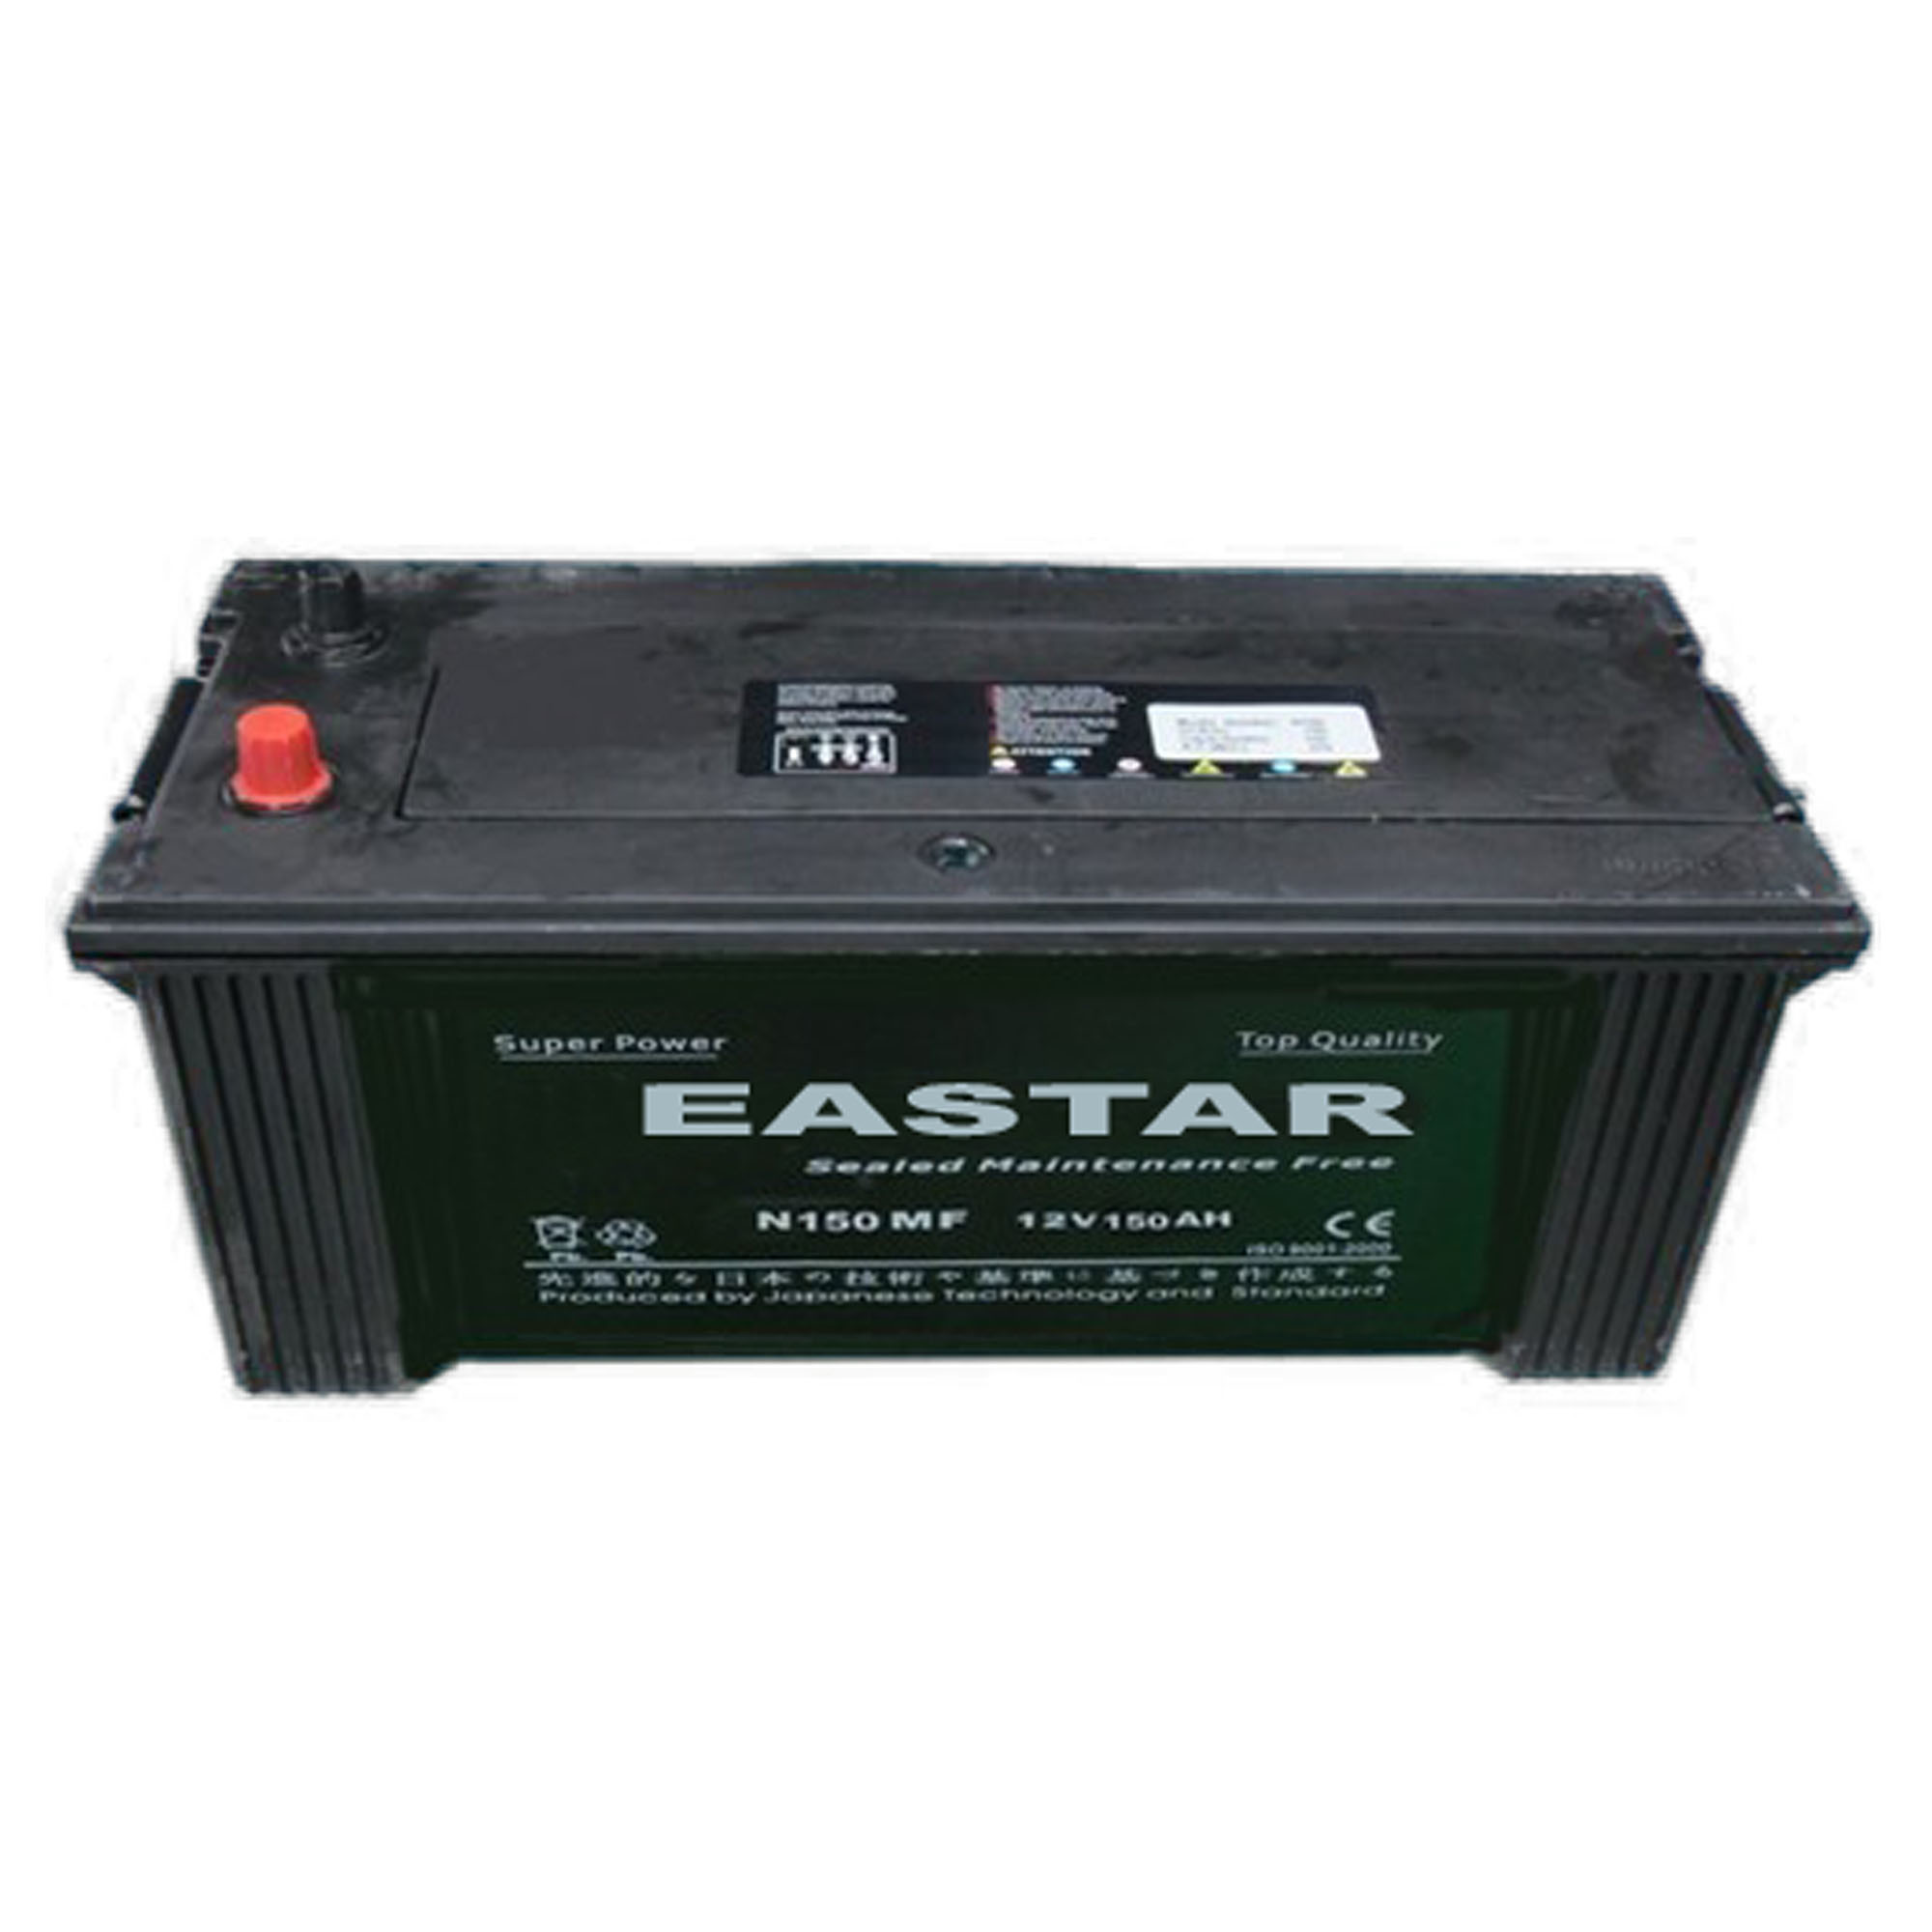 N200 12V 200ah Mf Auto Battery pictures & photos